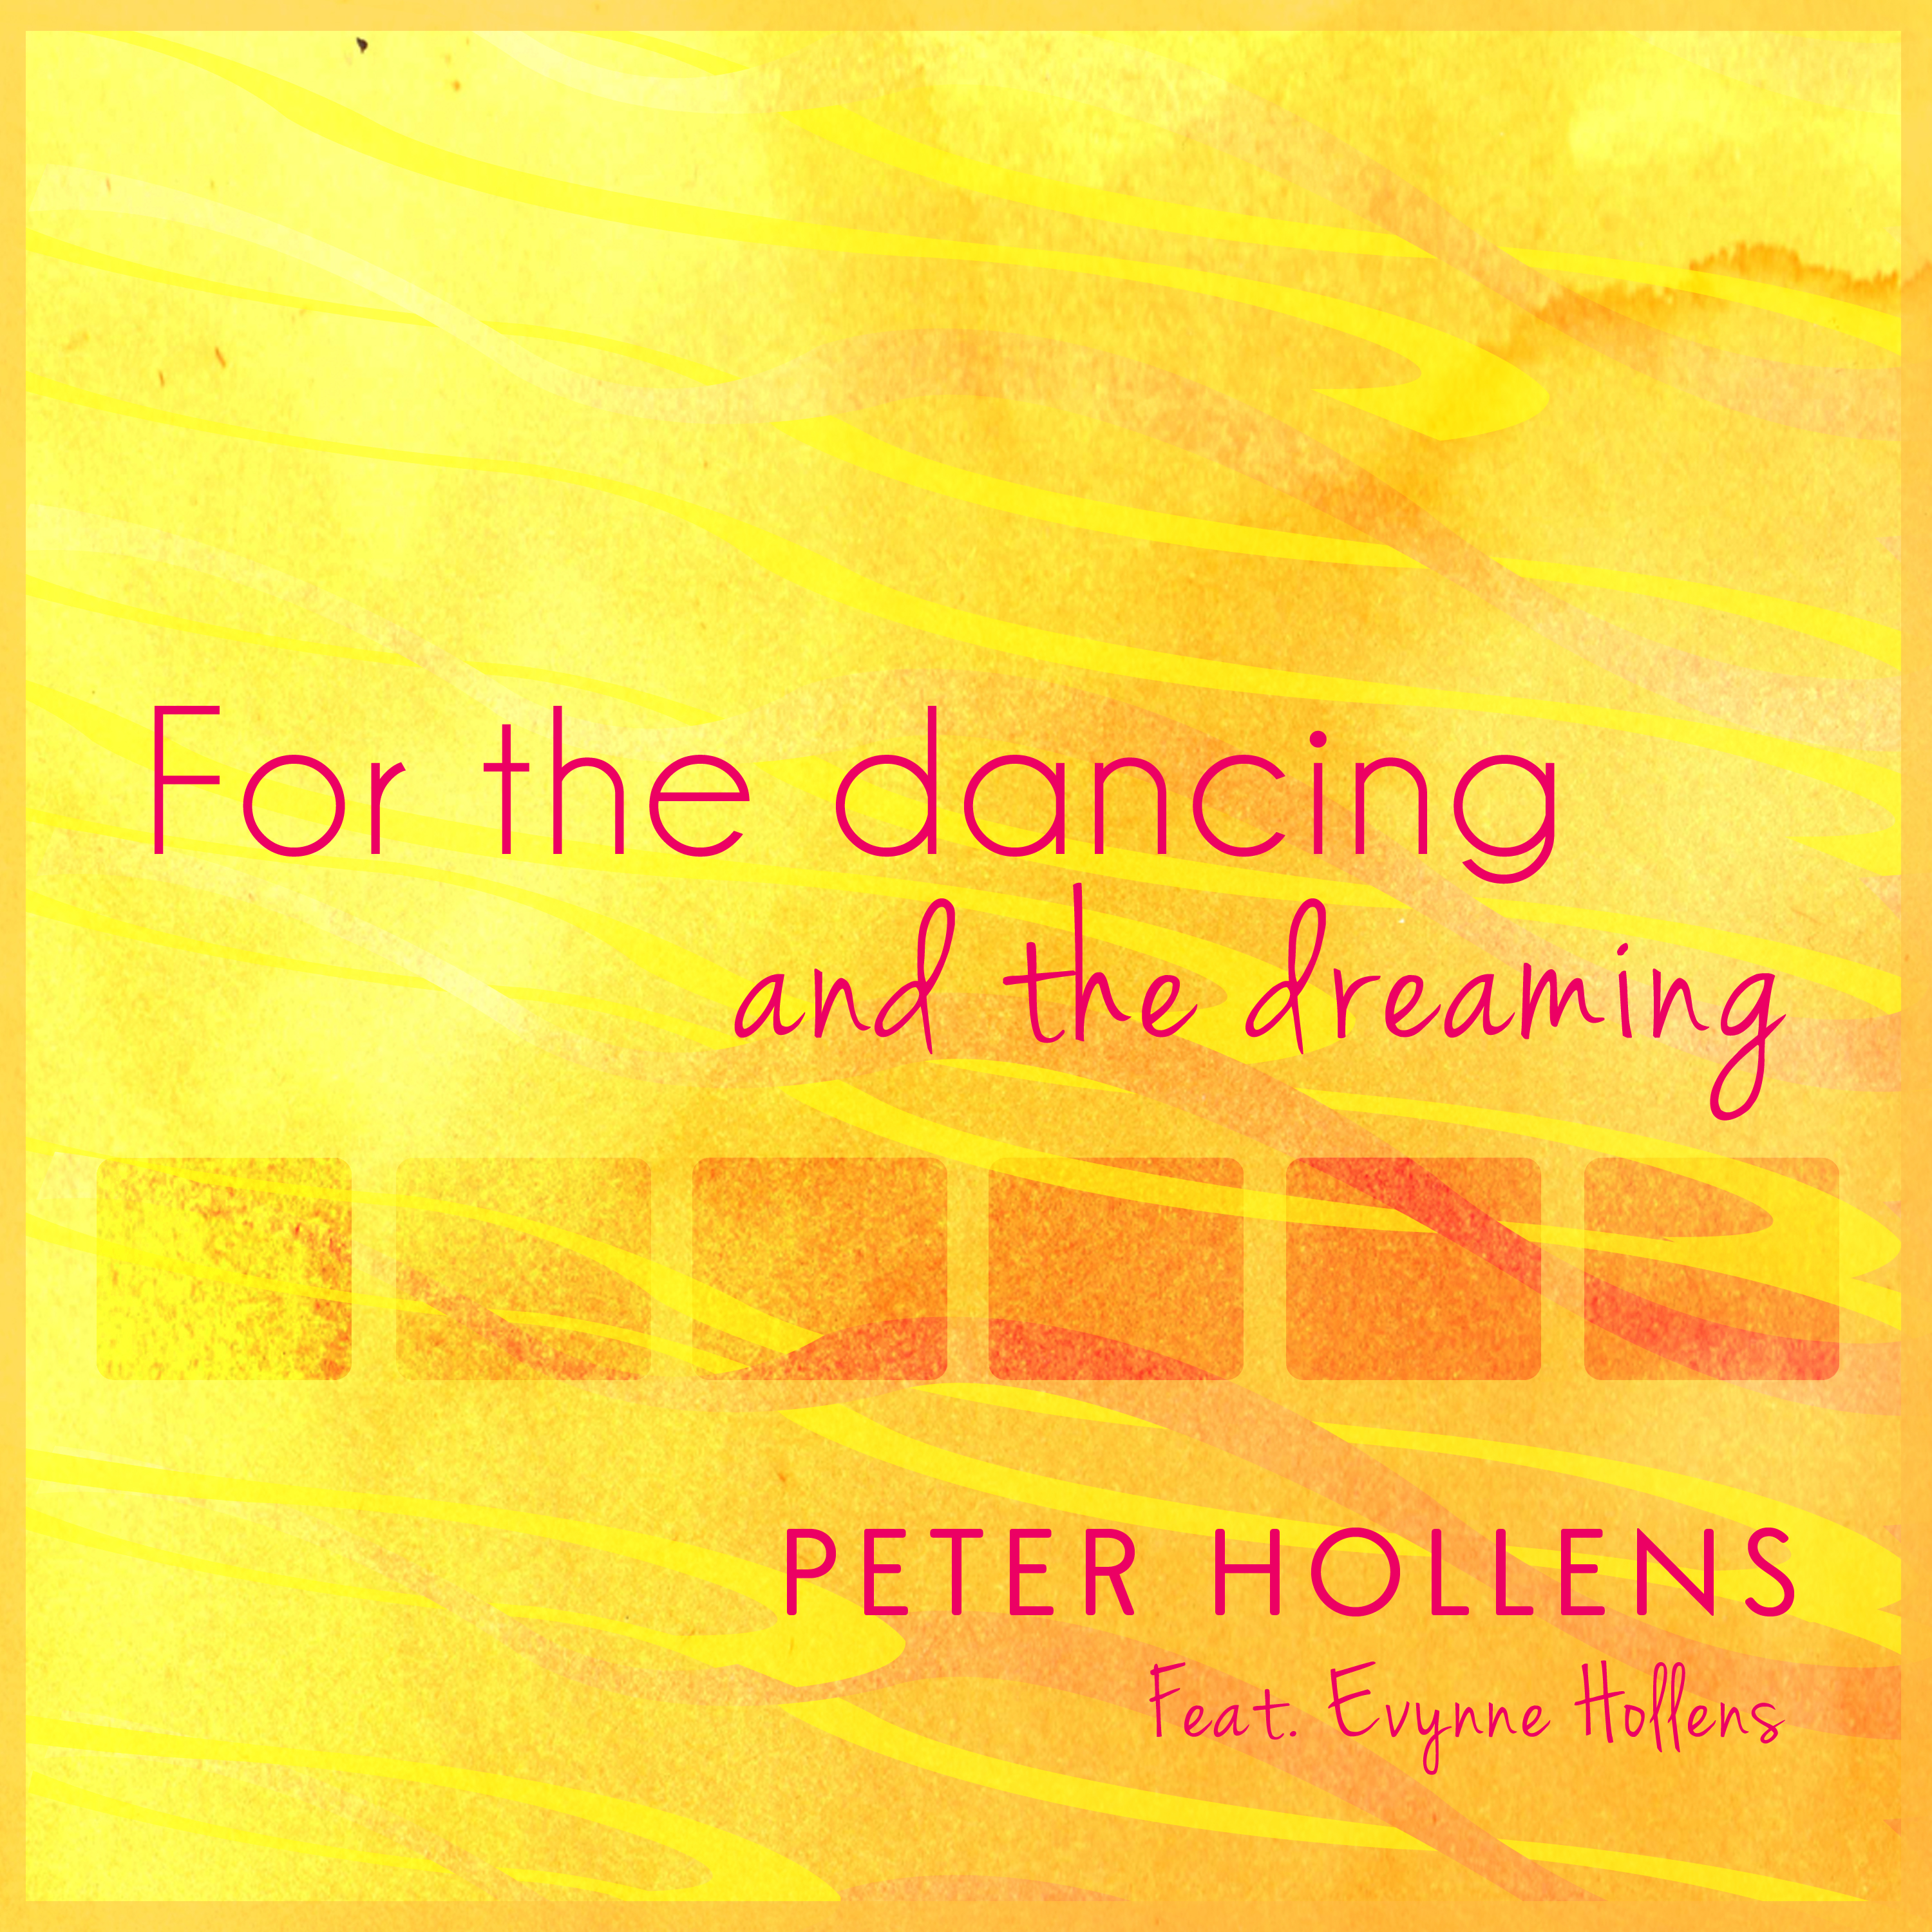 """Peter Hollens New Song """"For The Dancing and The Dreaming"""" from How To Train Your Dragon 2 Out Now 